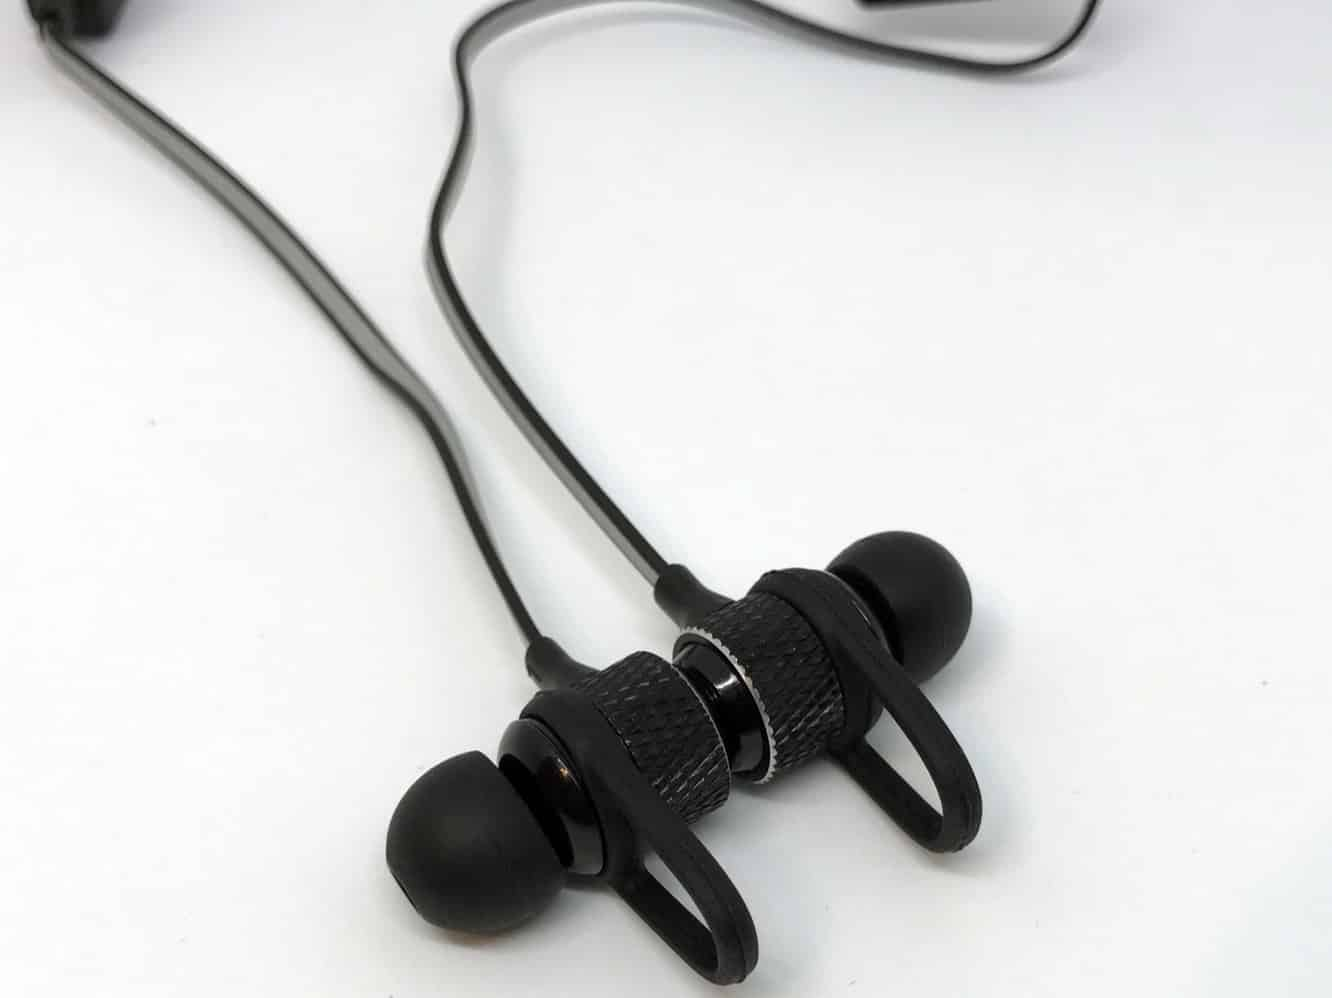 Review: Wicked Audio Shred In-Ear Headphones